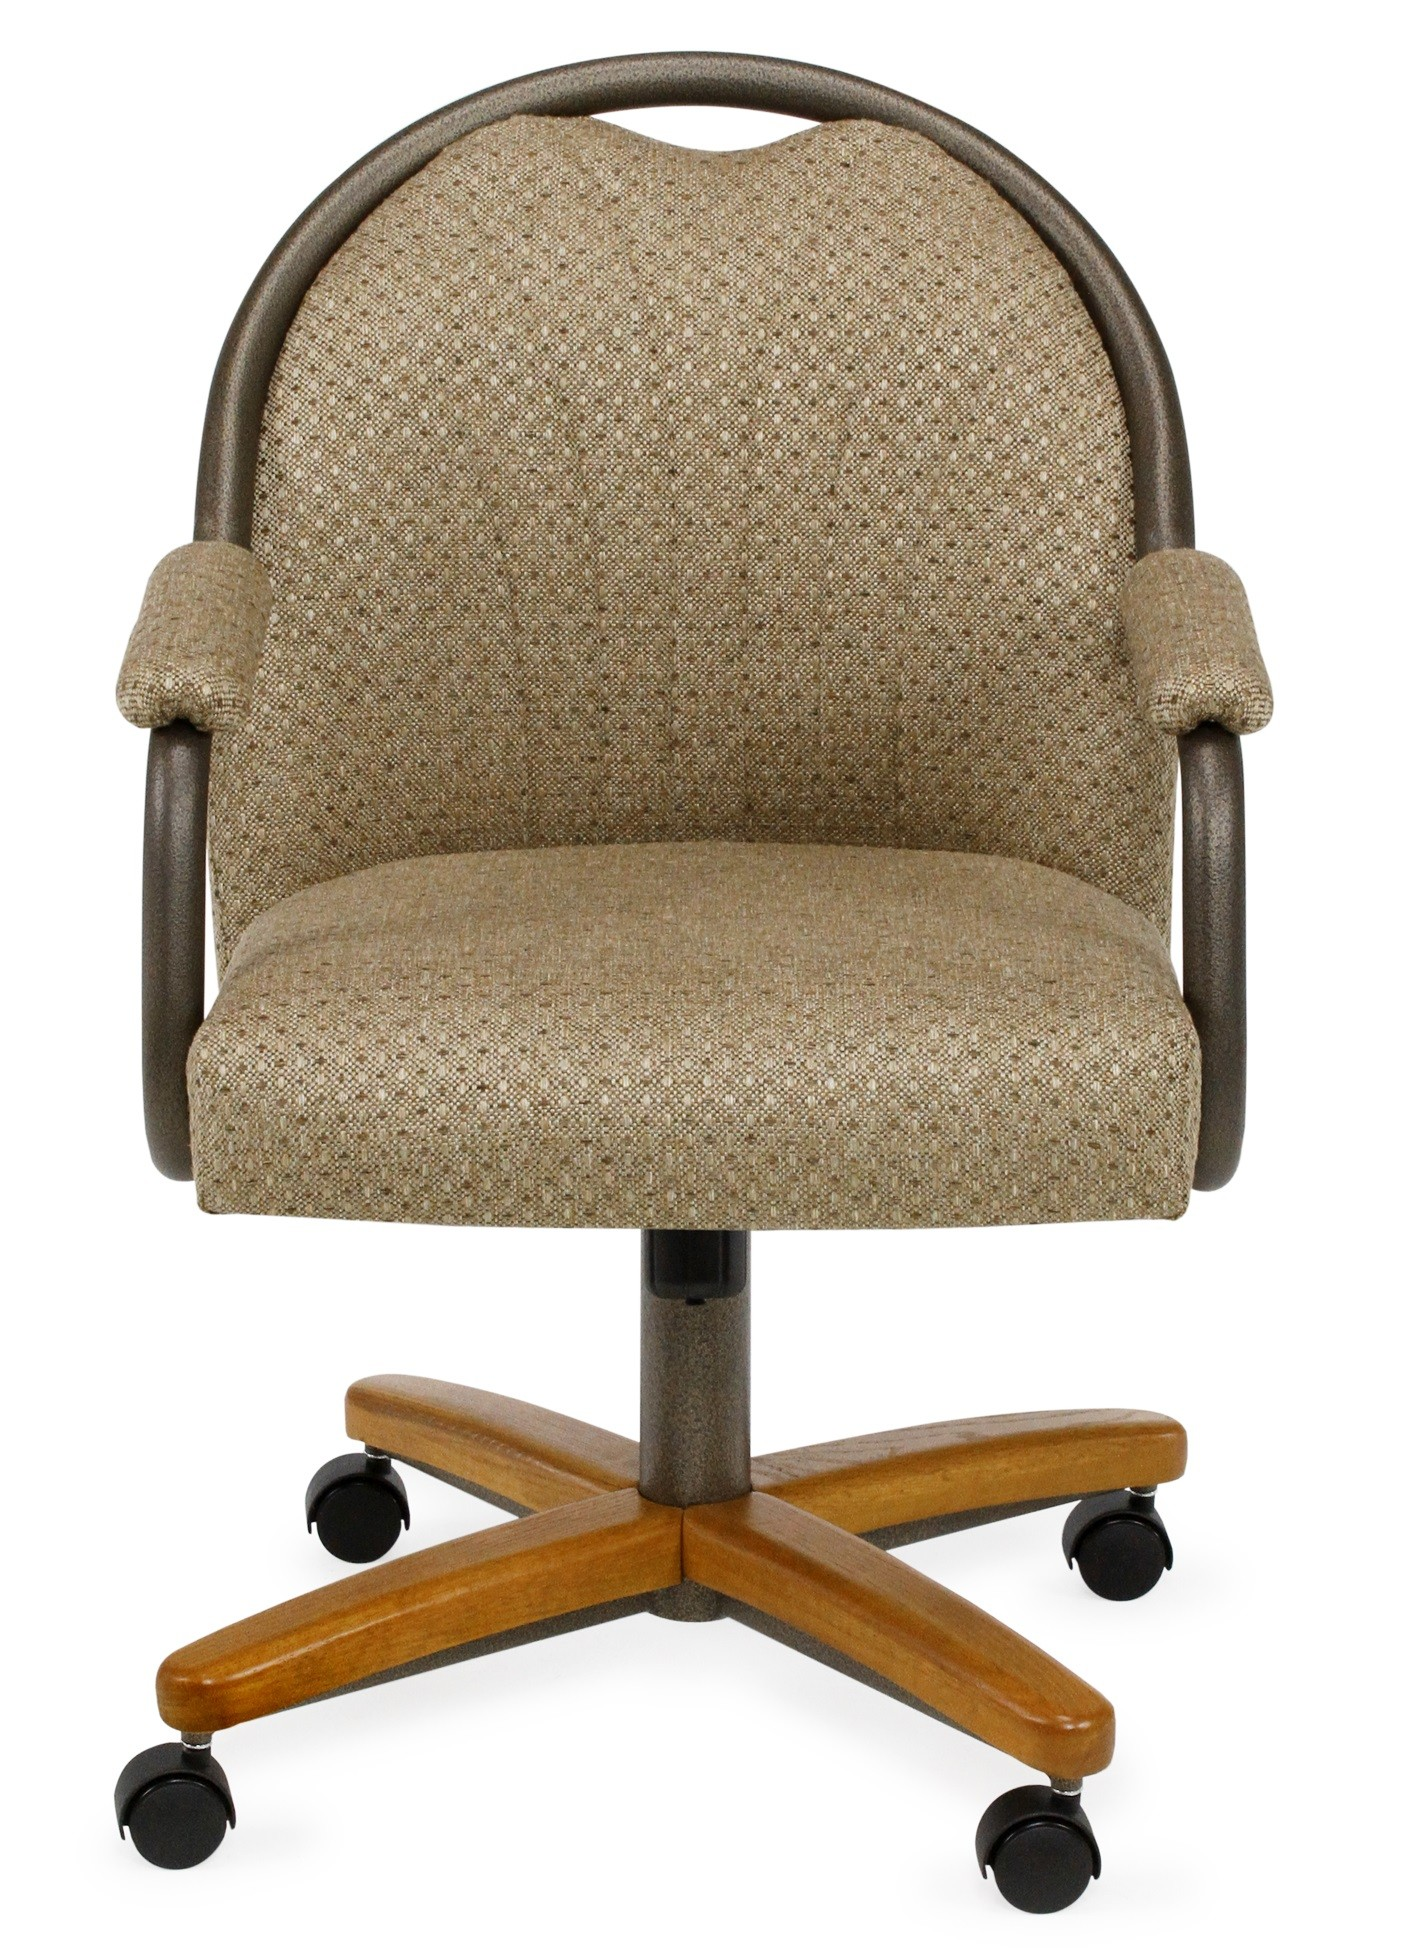 Roller Chairs Chromcraft C189 935 Swivel Tilt Roller Arm Chair